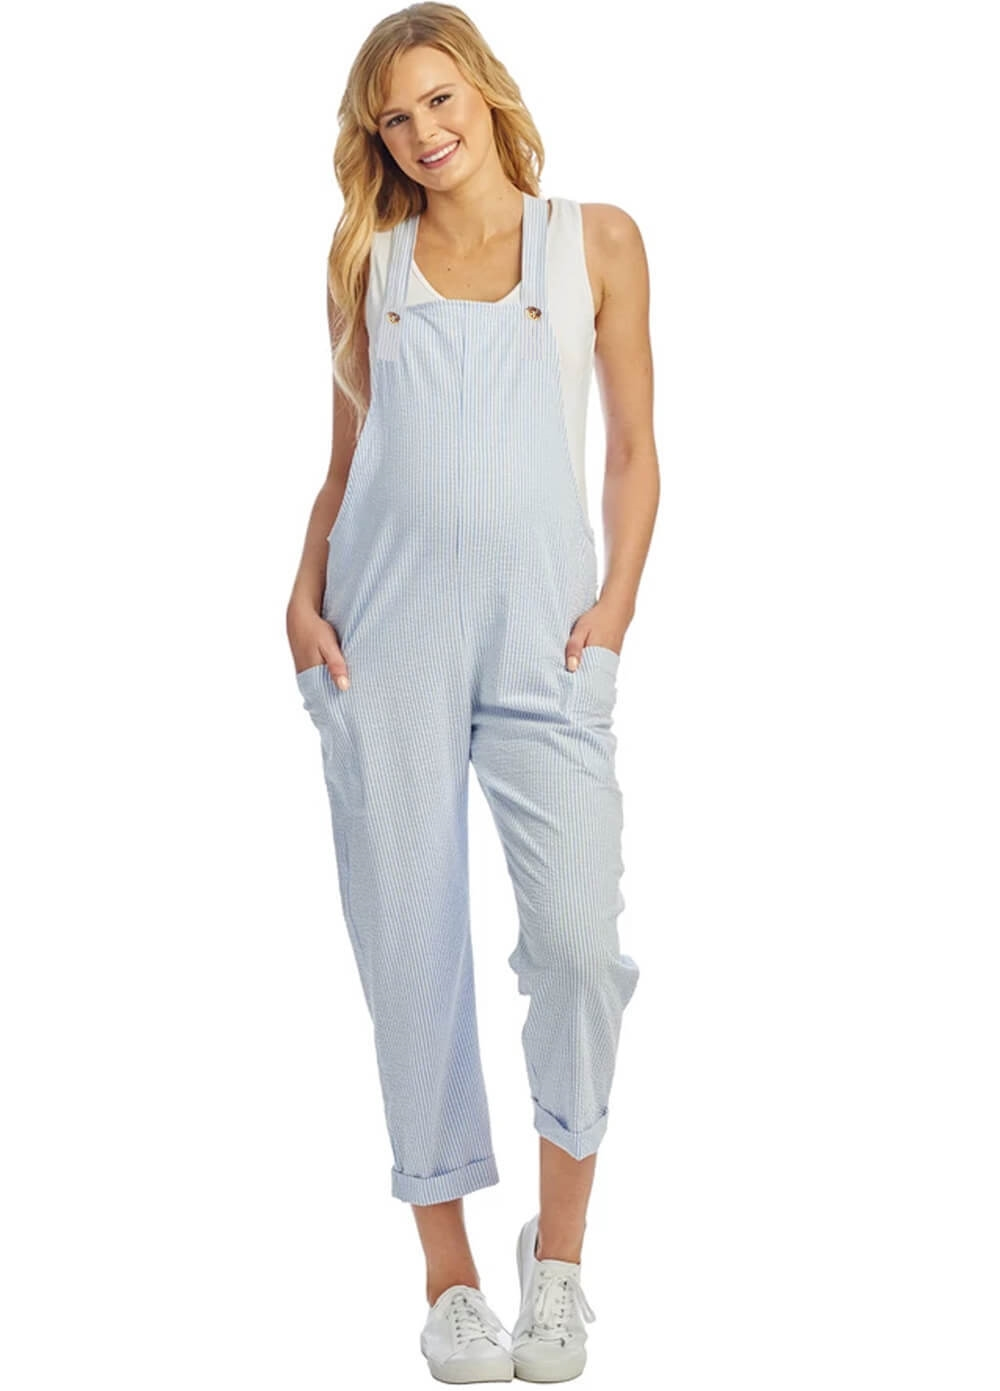 Queen Bee Everly Grey Nani Seersucker Maternity Overalls | Queen Bee